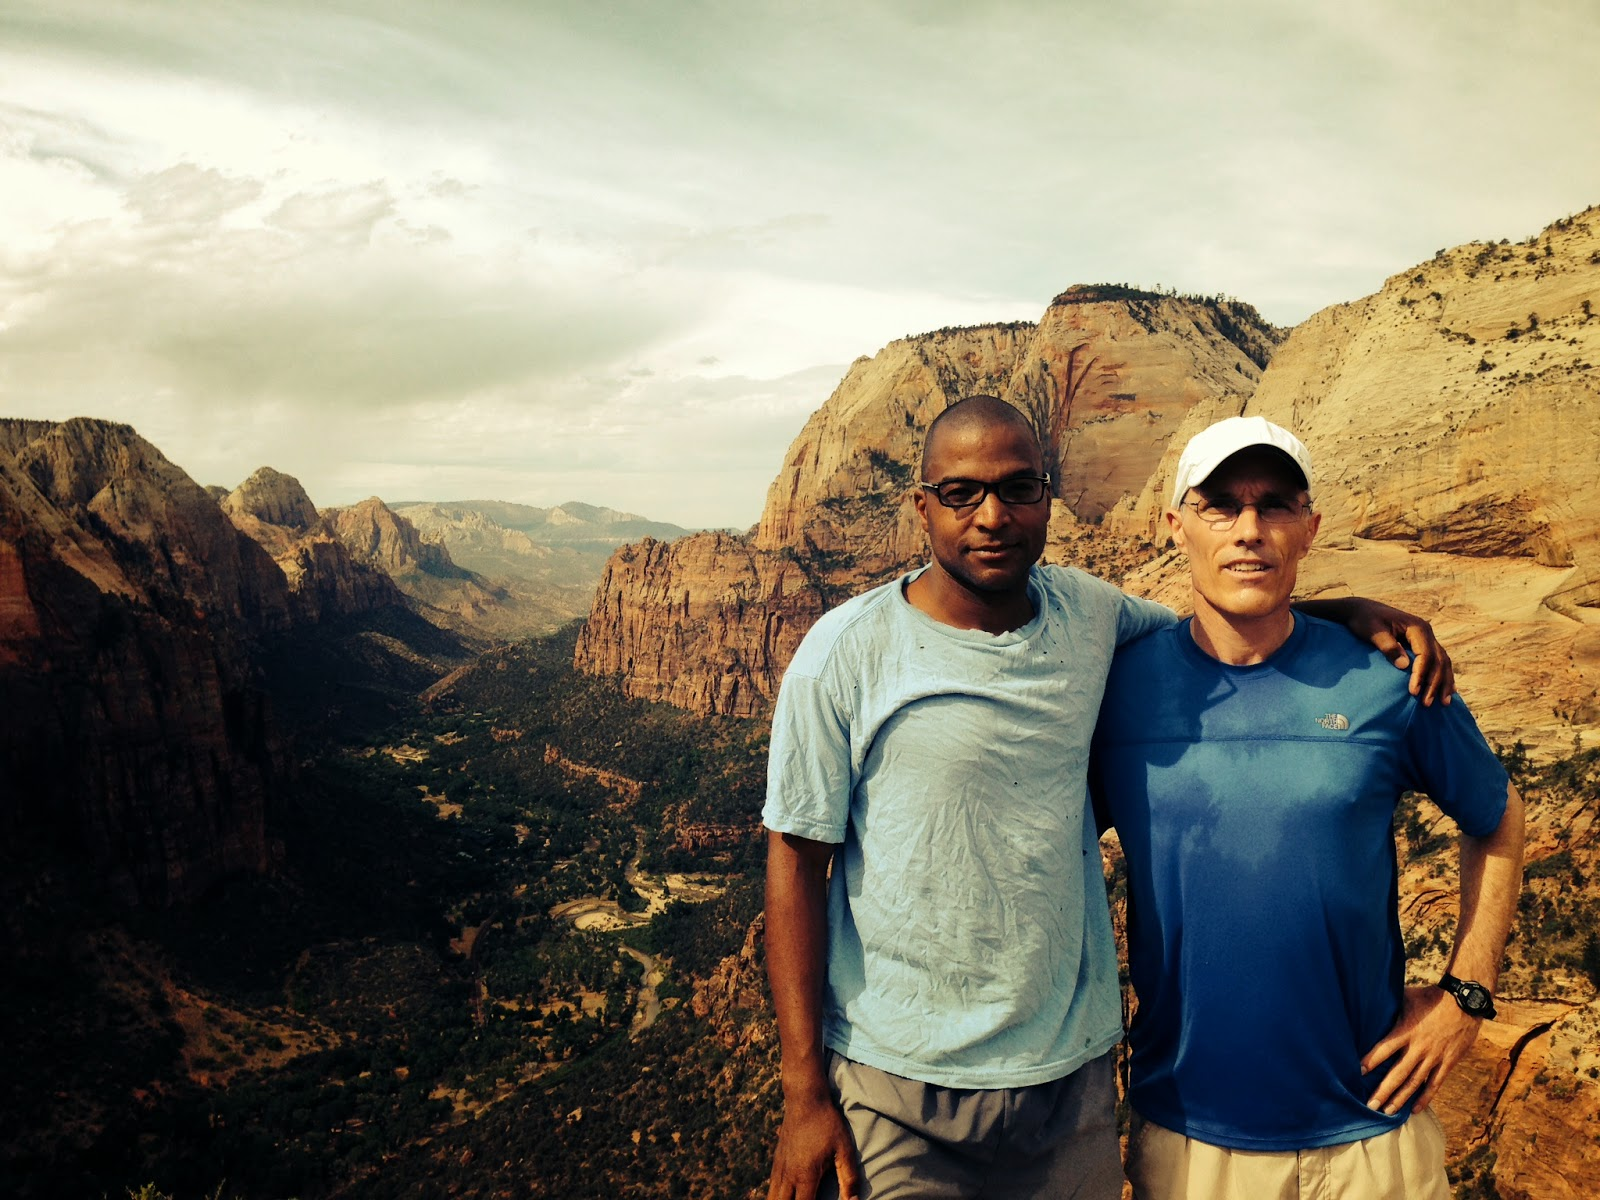 Me (wrinkled, weirdly folded shirt) and My Oldest Friend (since age 6) on Angel's Landing in Zion National Park this Week